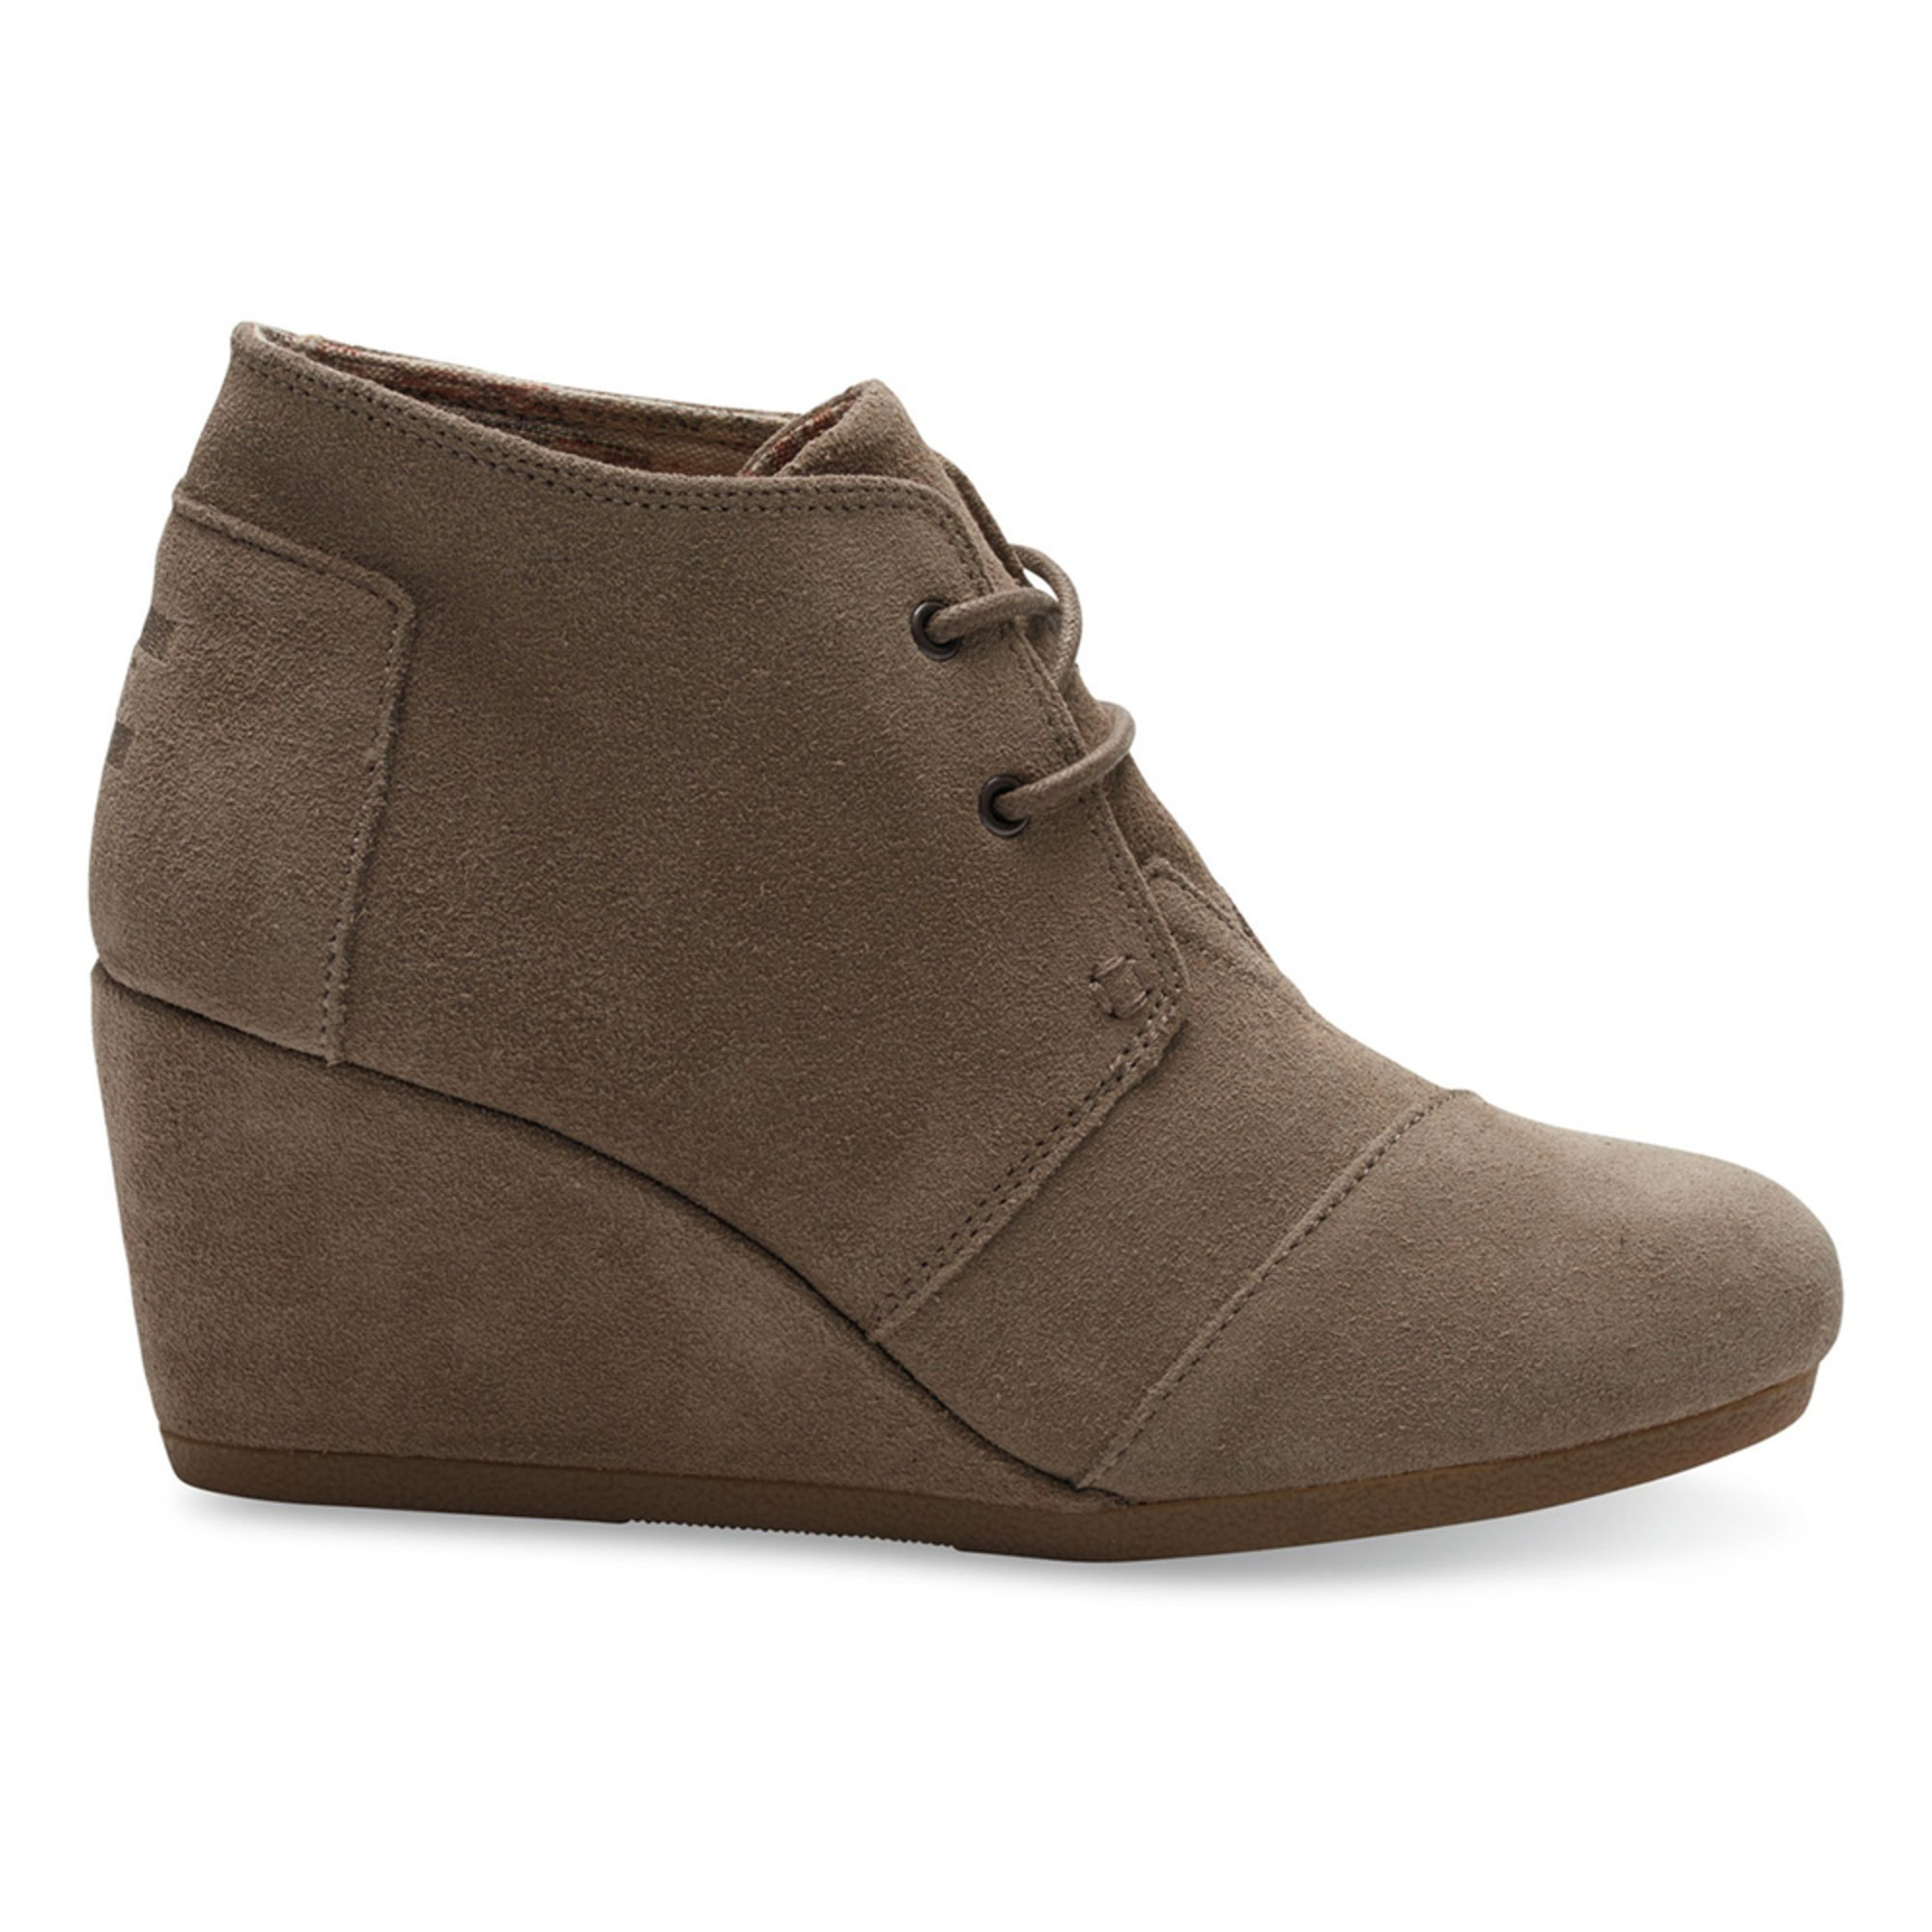 99675c87b46 Toms. Toms Women s Suede Desert Wedge Boot